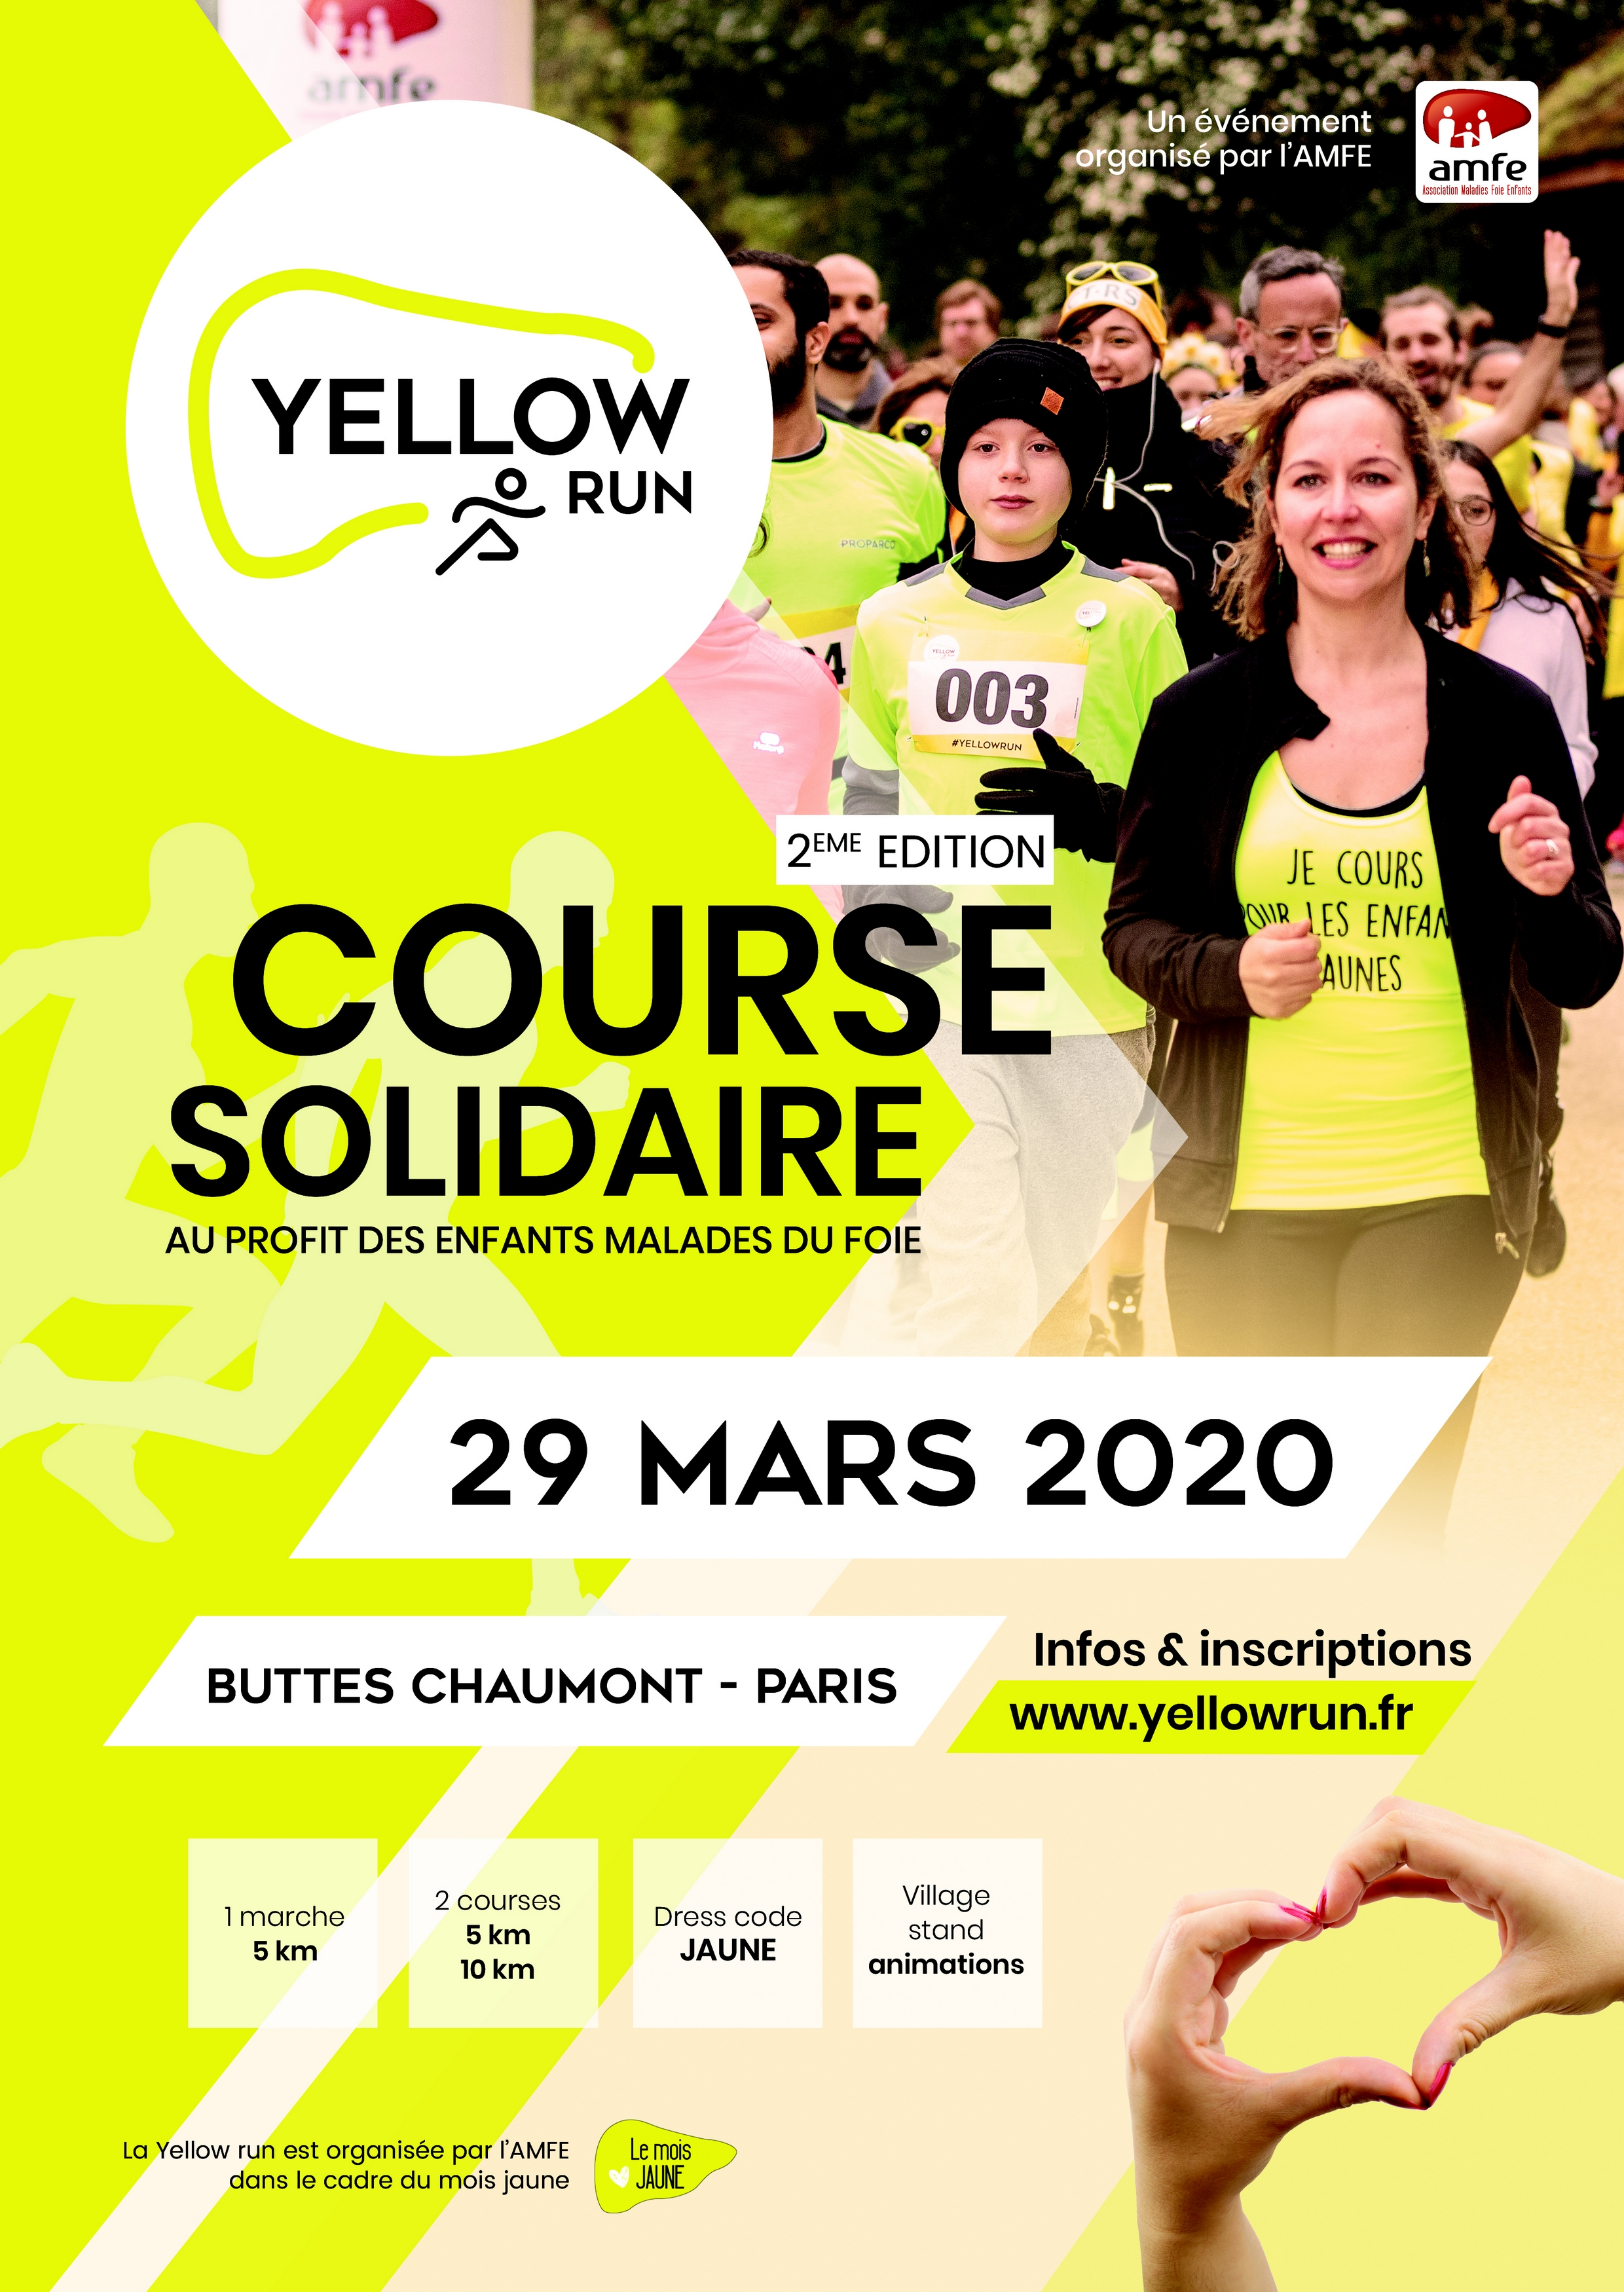 yellow run 2020 amfe